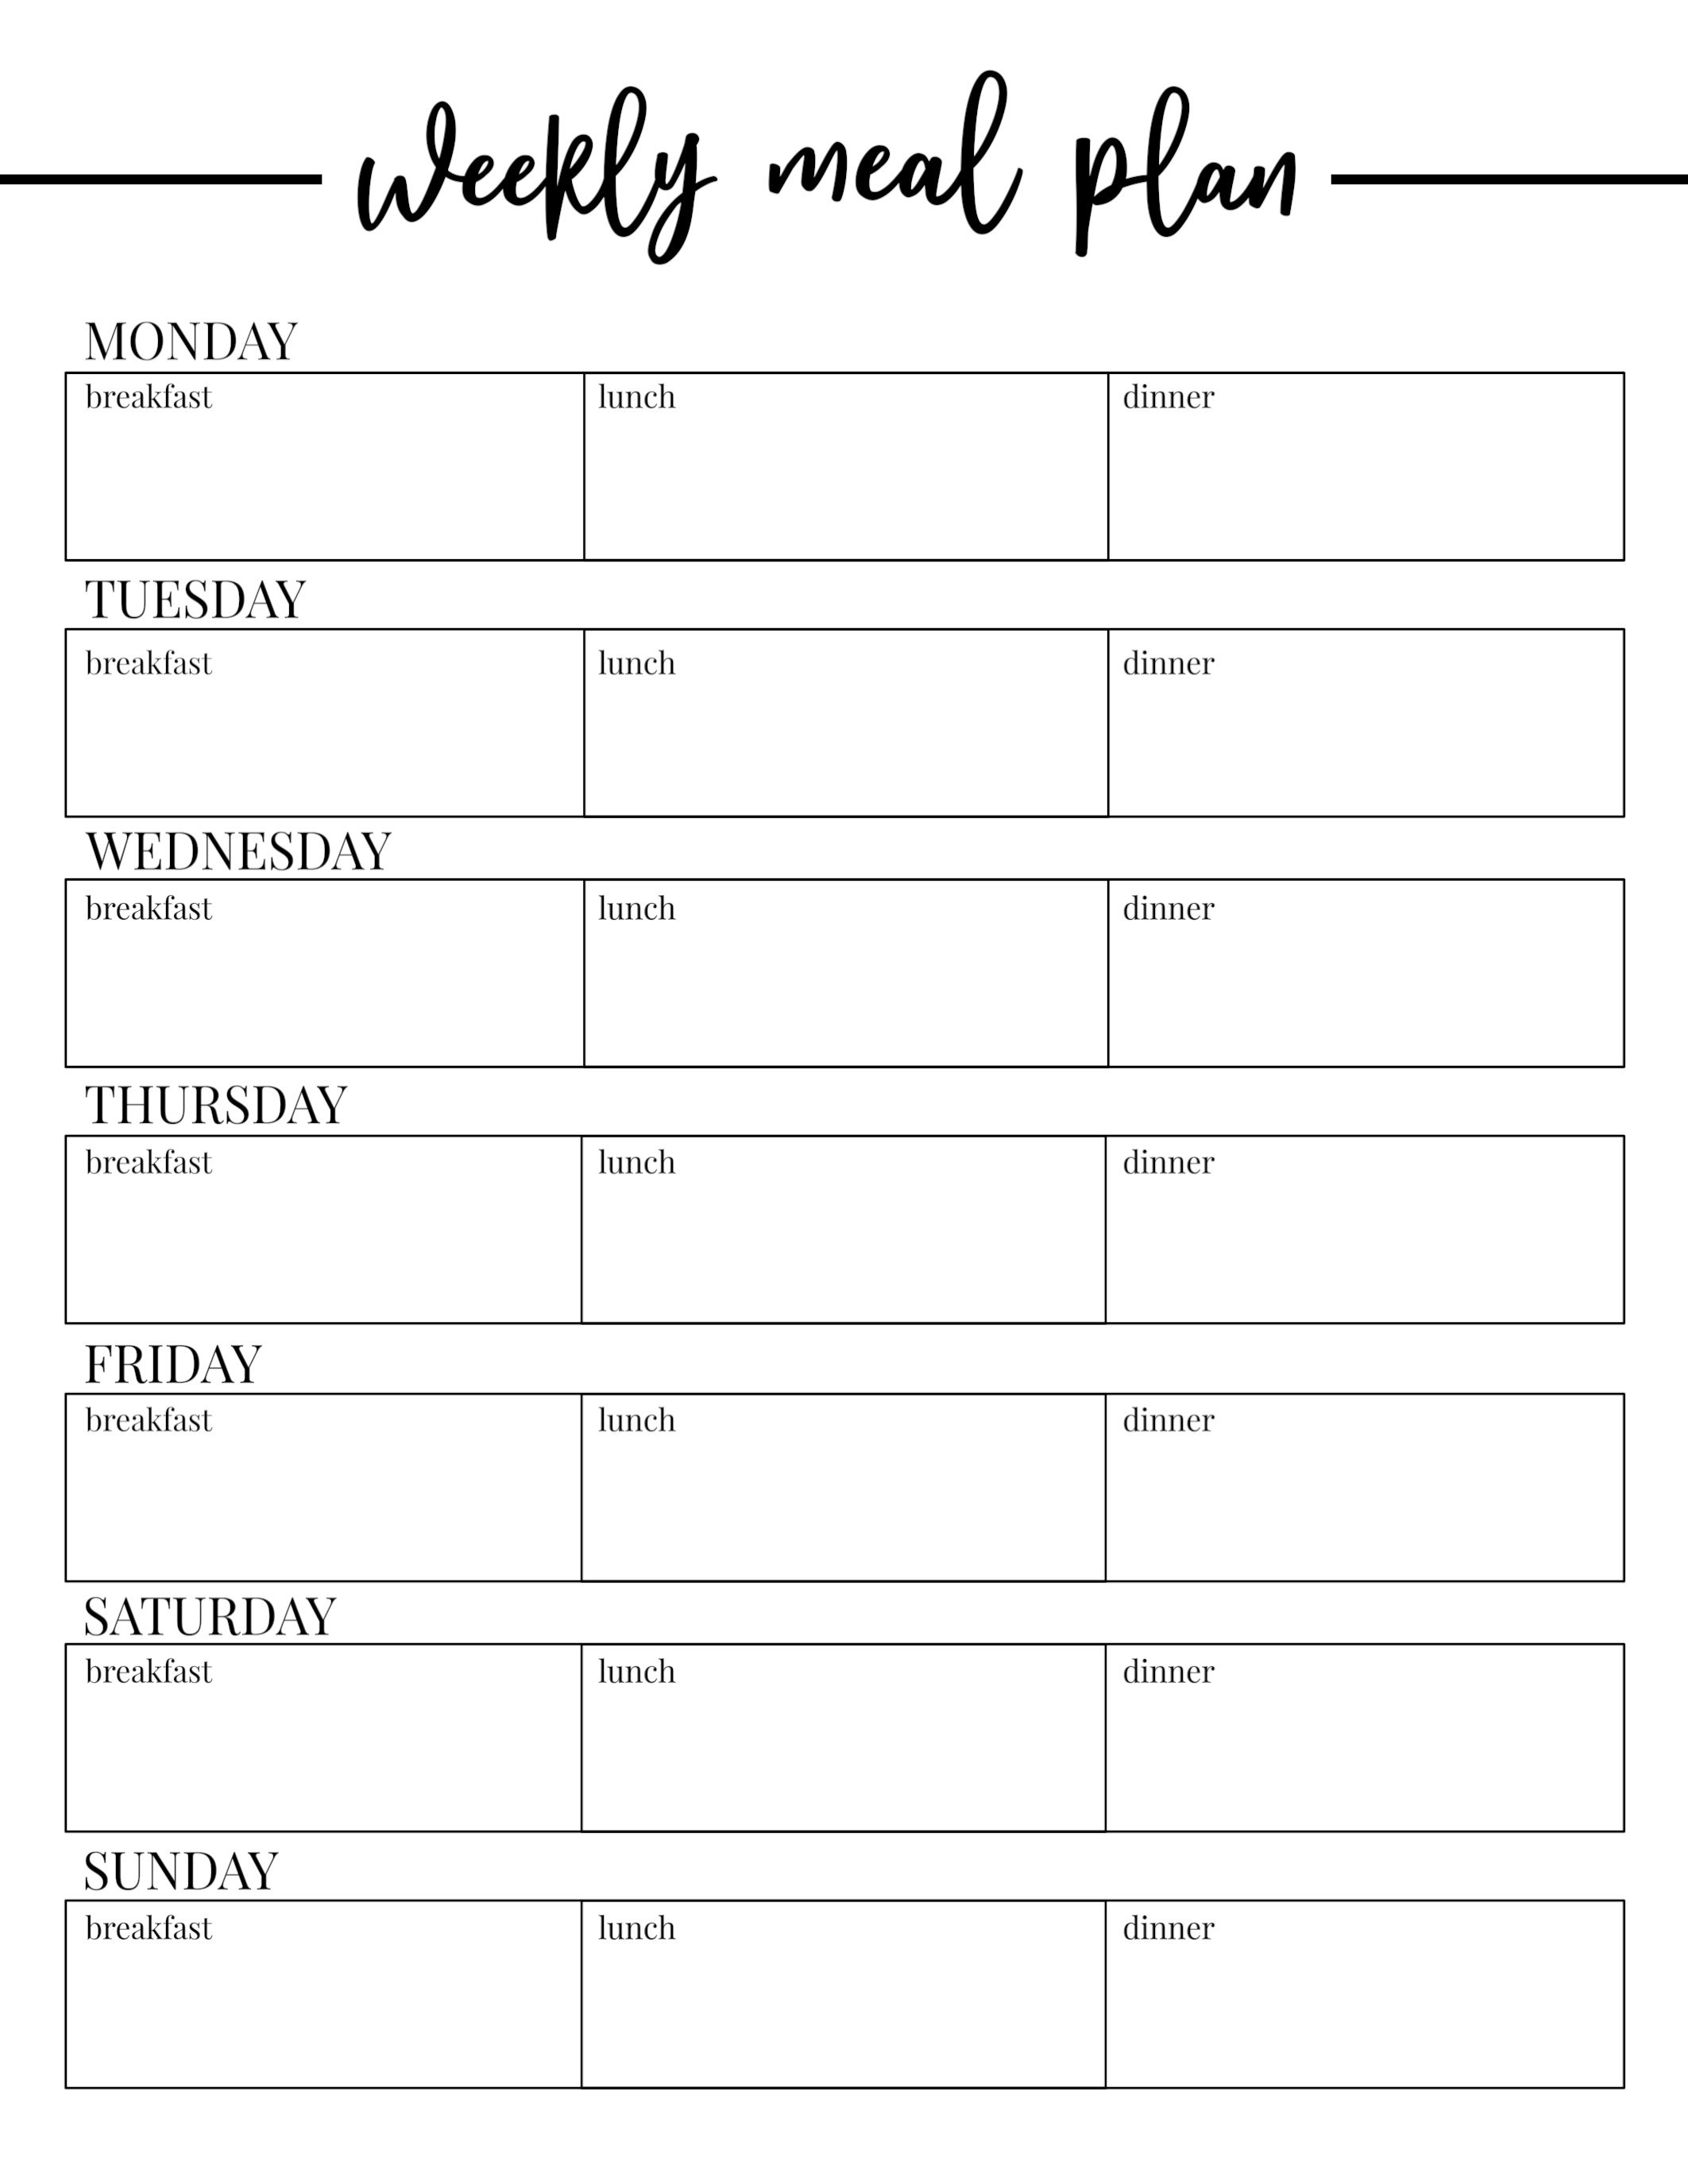 Plan Templates Meal Weekly Template Wondrous Word Doc Planning For Weekly Meal Planner Template Word